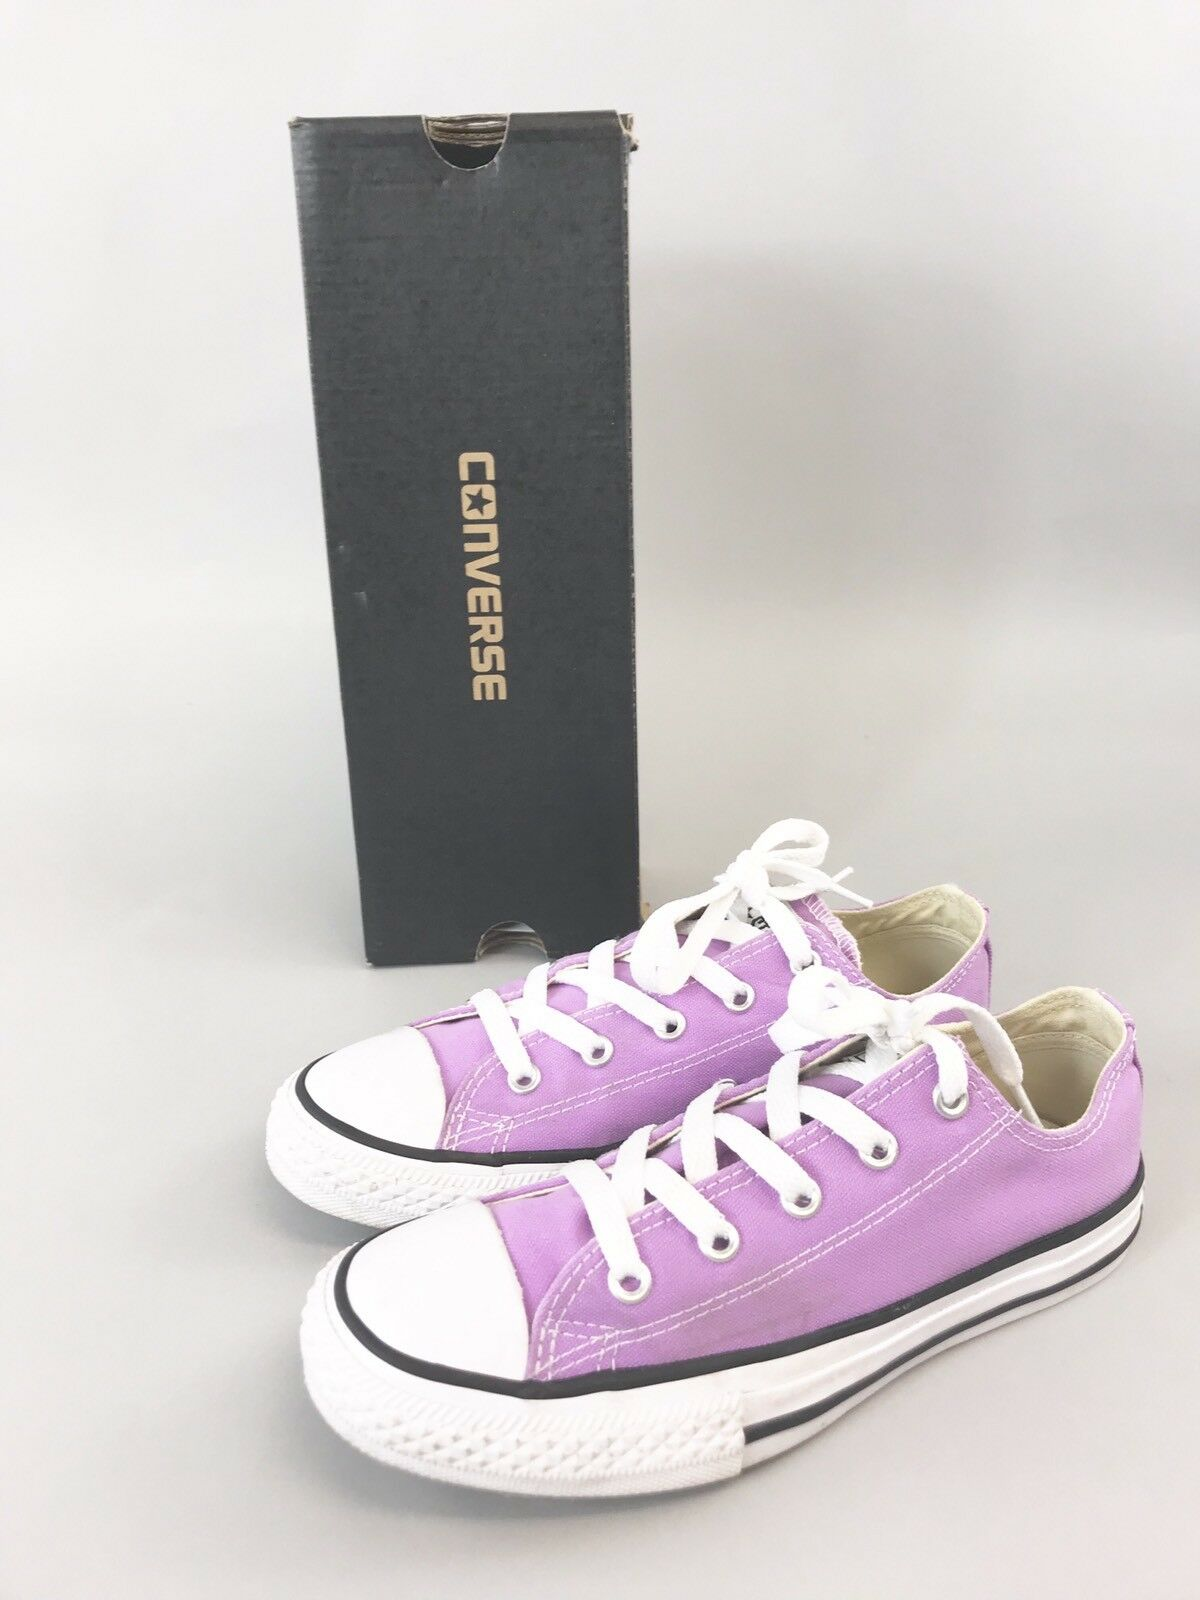 Converse All Star Ladies Low Top Lace Up Trainers Fuchsia Glow Sz UK2 Eu34 VGC